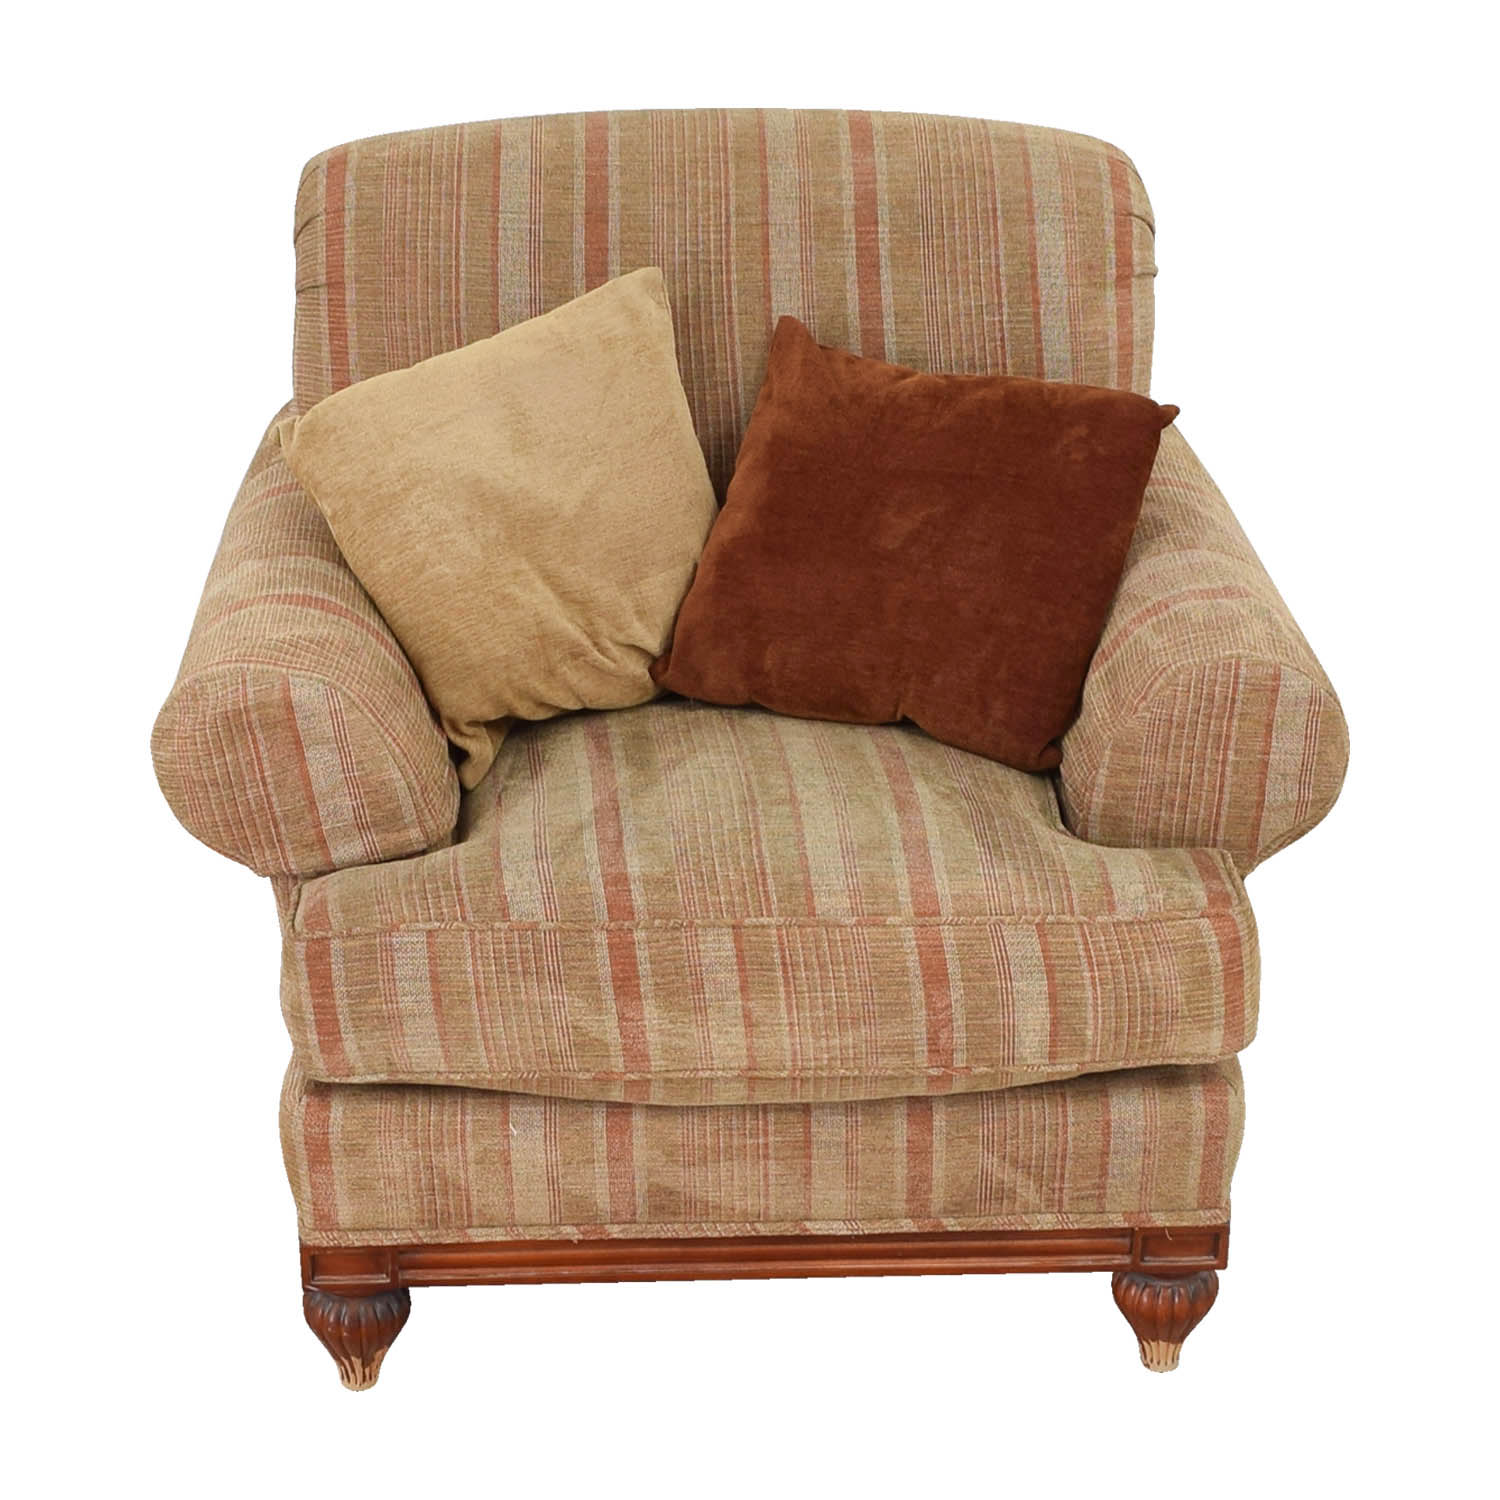 shop Councill Councill Tan and Paprika Comfort Chair with Throw Pillows online